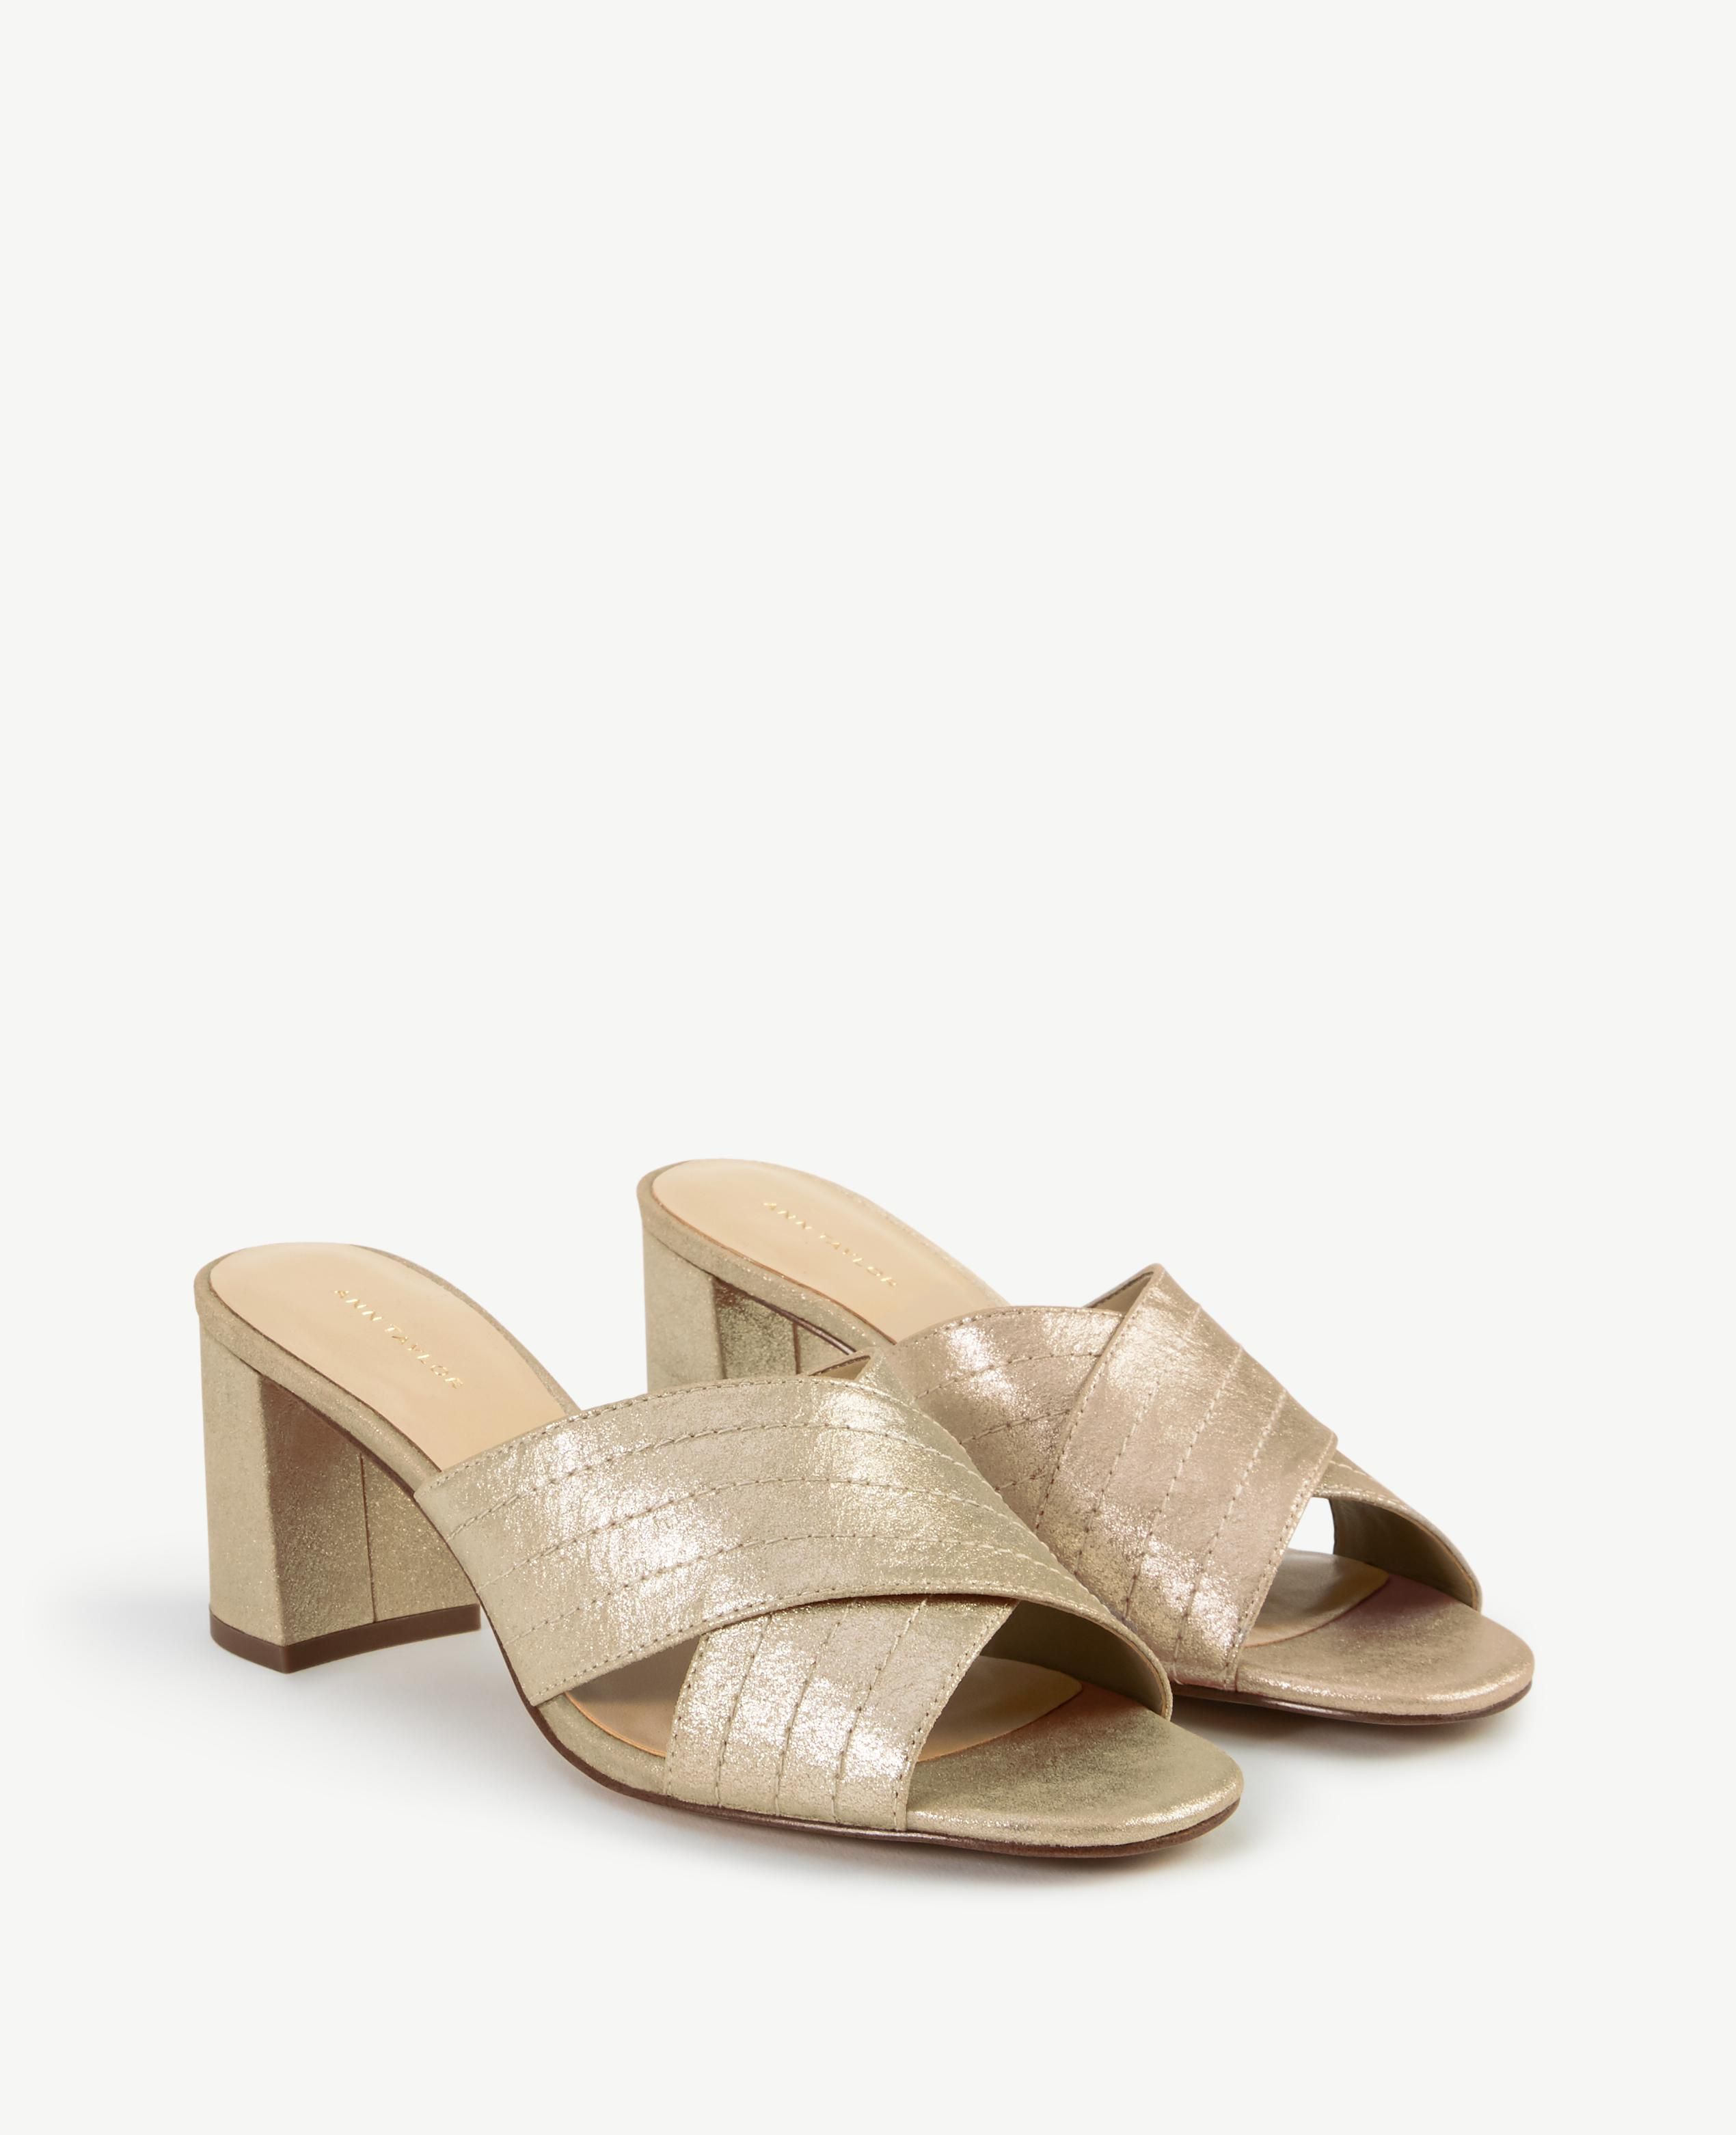 ANN TAYLOR Honor Metallic Leather Heeled Sandals IUyYJ7